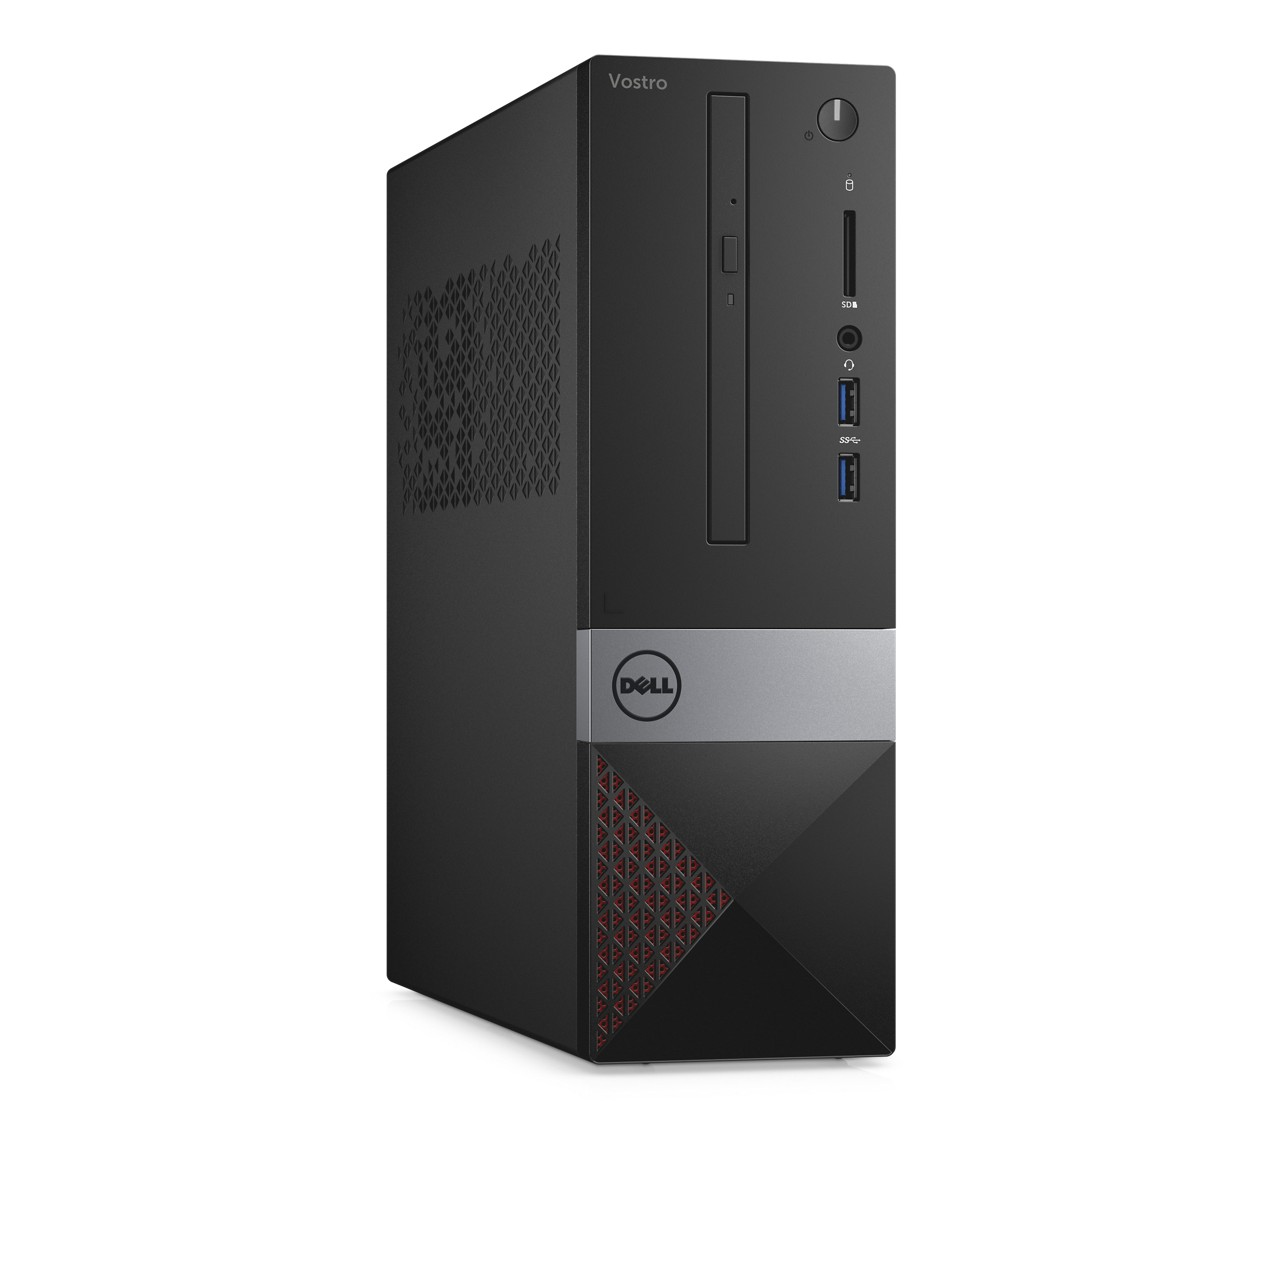 Dell PC Vostro 3268 SF i5-7400/8GB/256GB SSD/VGA/HDMI/DVD-RW/WiFi+BT/W10P/3RNBD/Černý